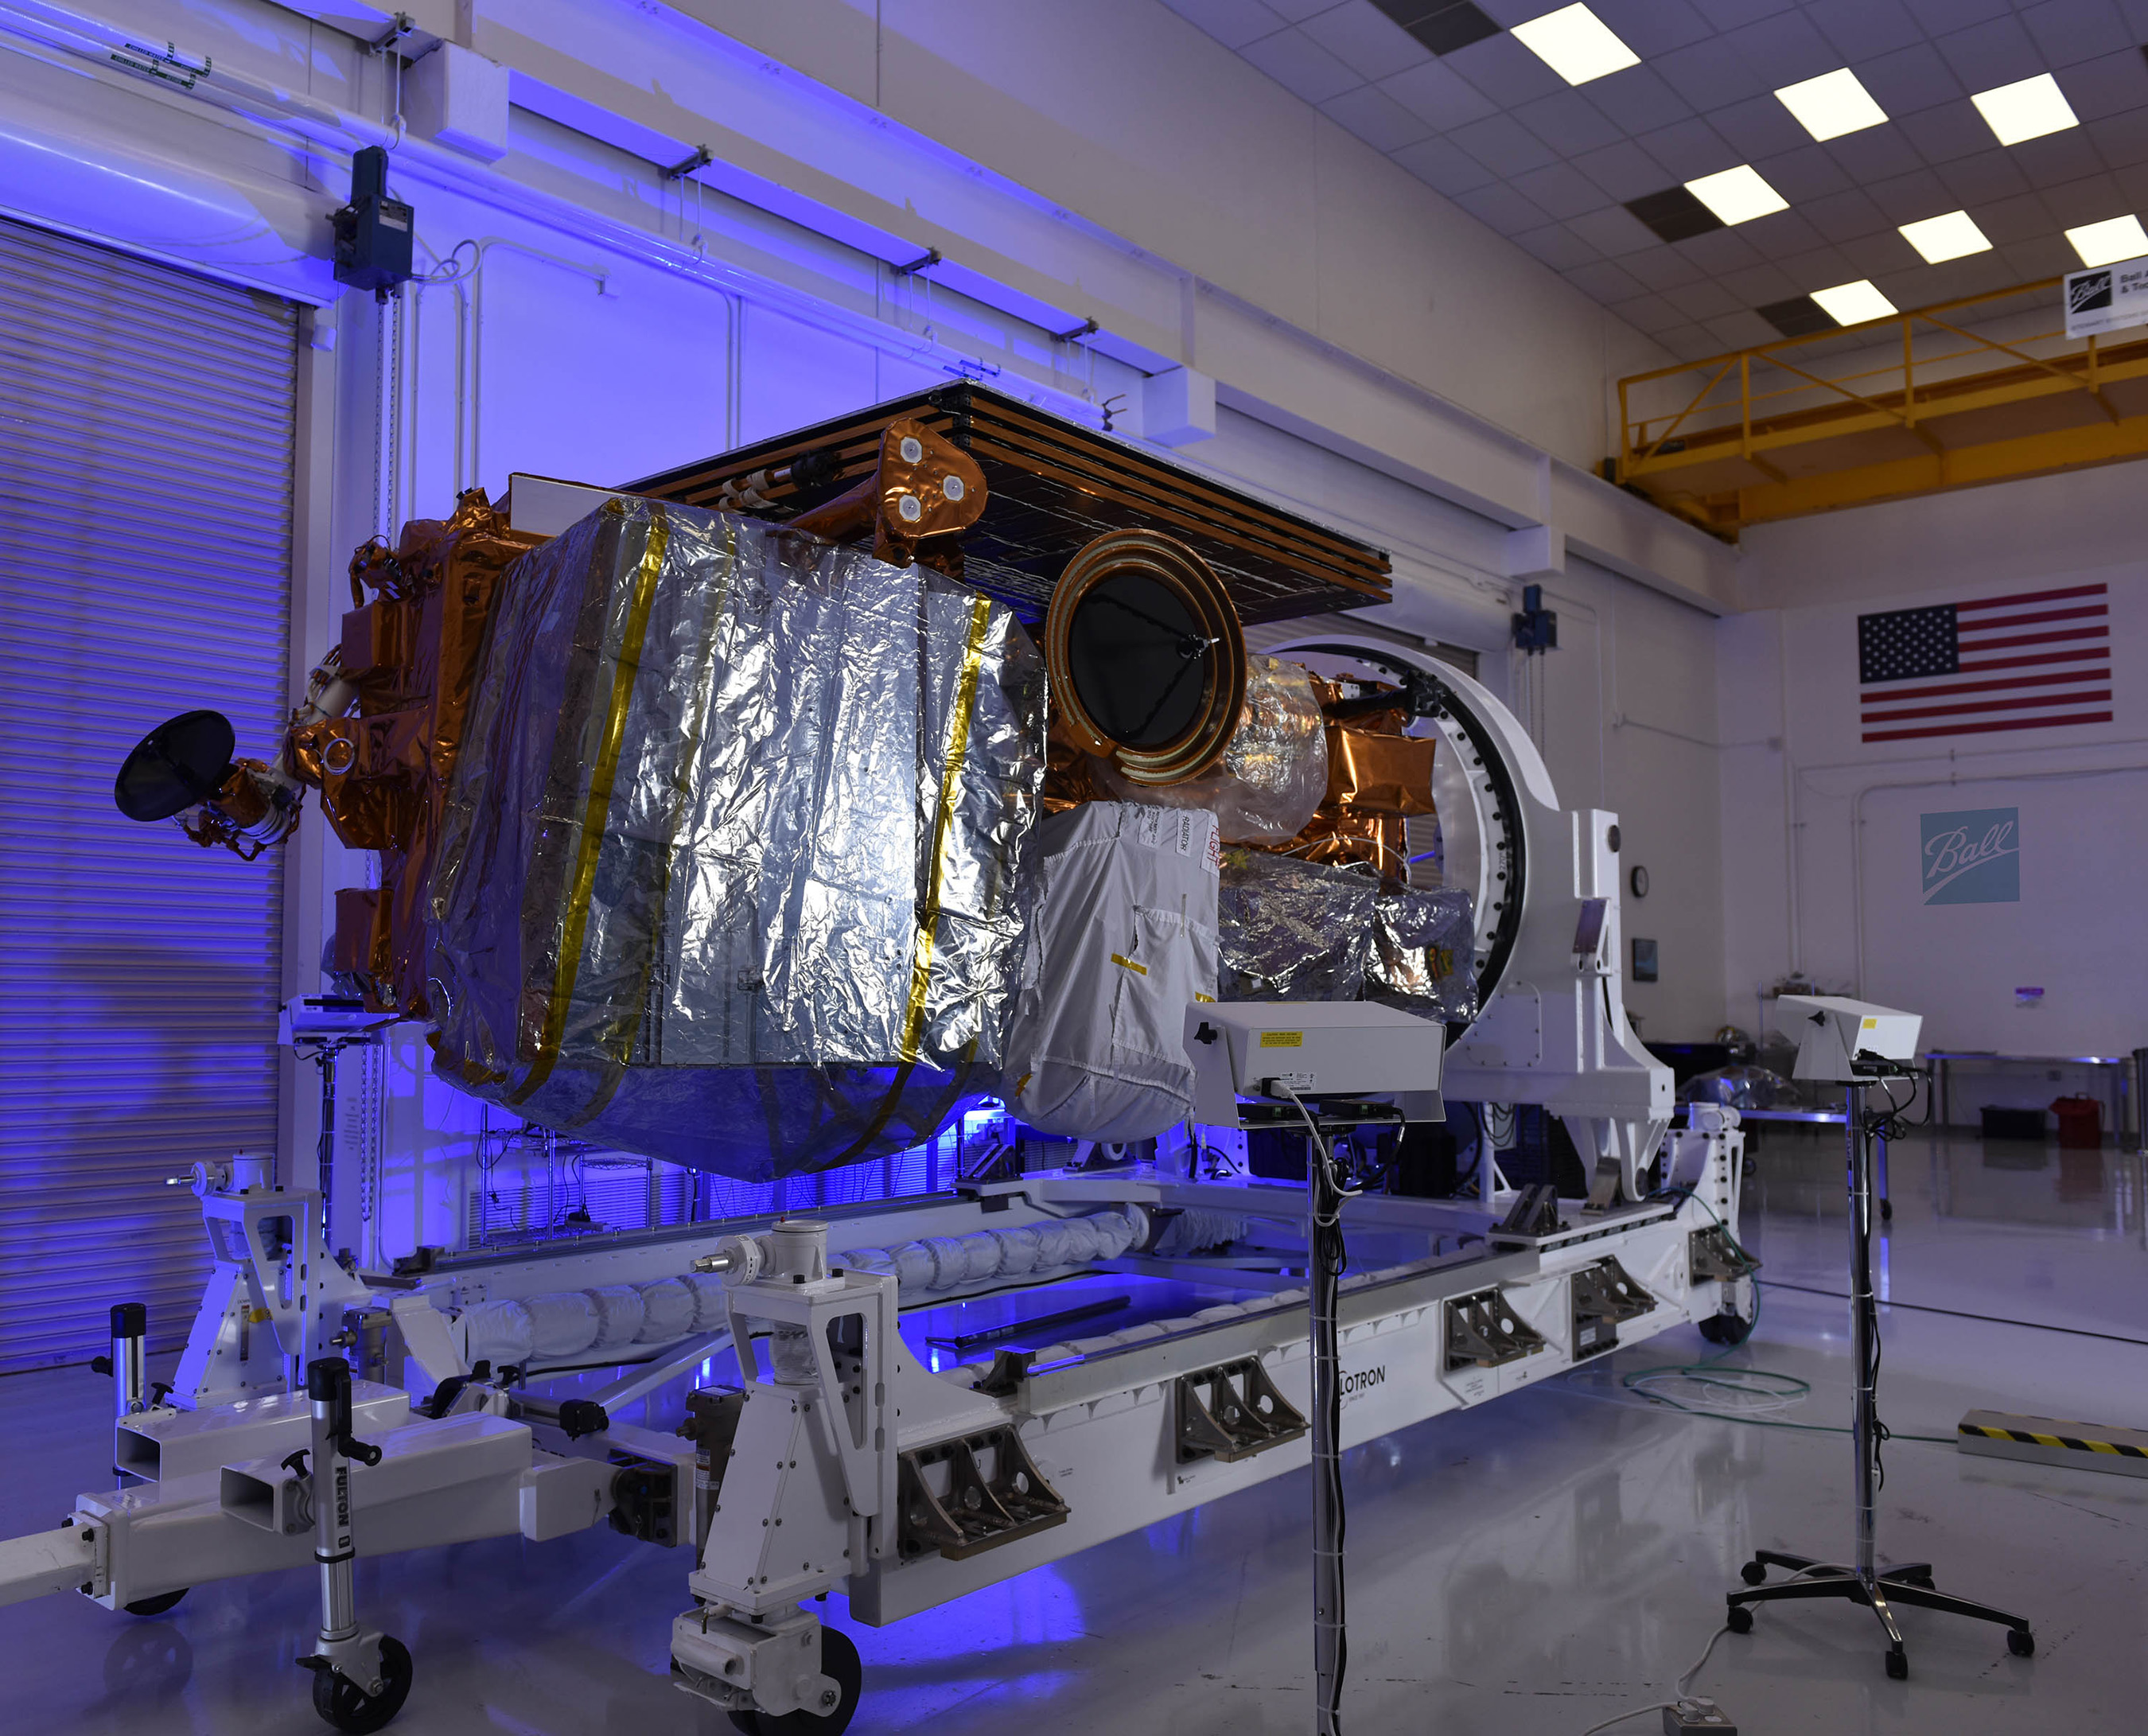 The completed JPSS-1 satellite, shown here with its five integrated instruments in the cleanroom at Ball Aerospace, Boulder, Colo., is ready for shipment to Vandenberg Air Force Base for final launch preparations. CREDIT: Ball Aerospace